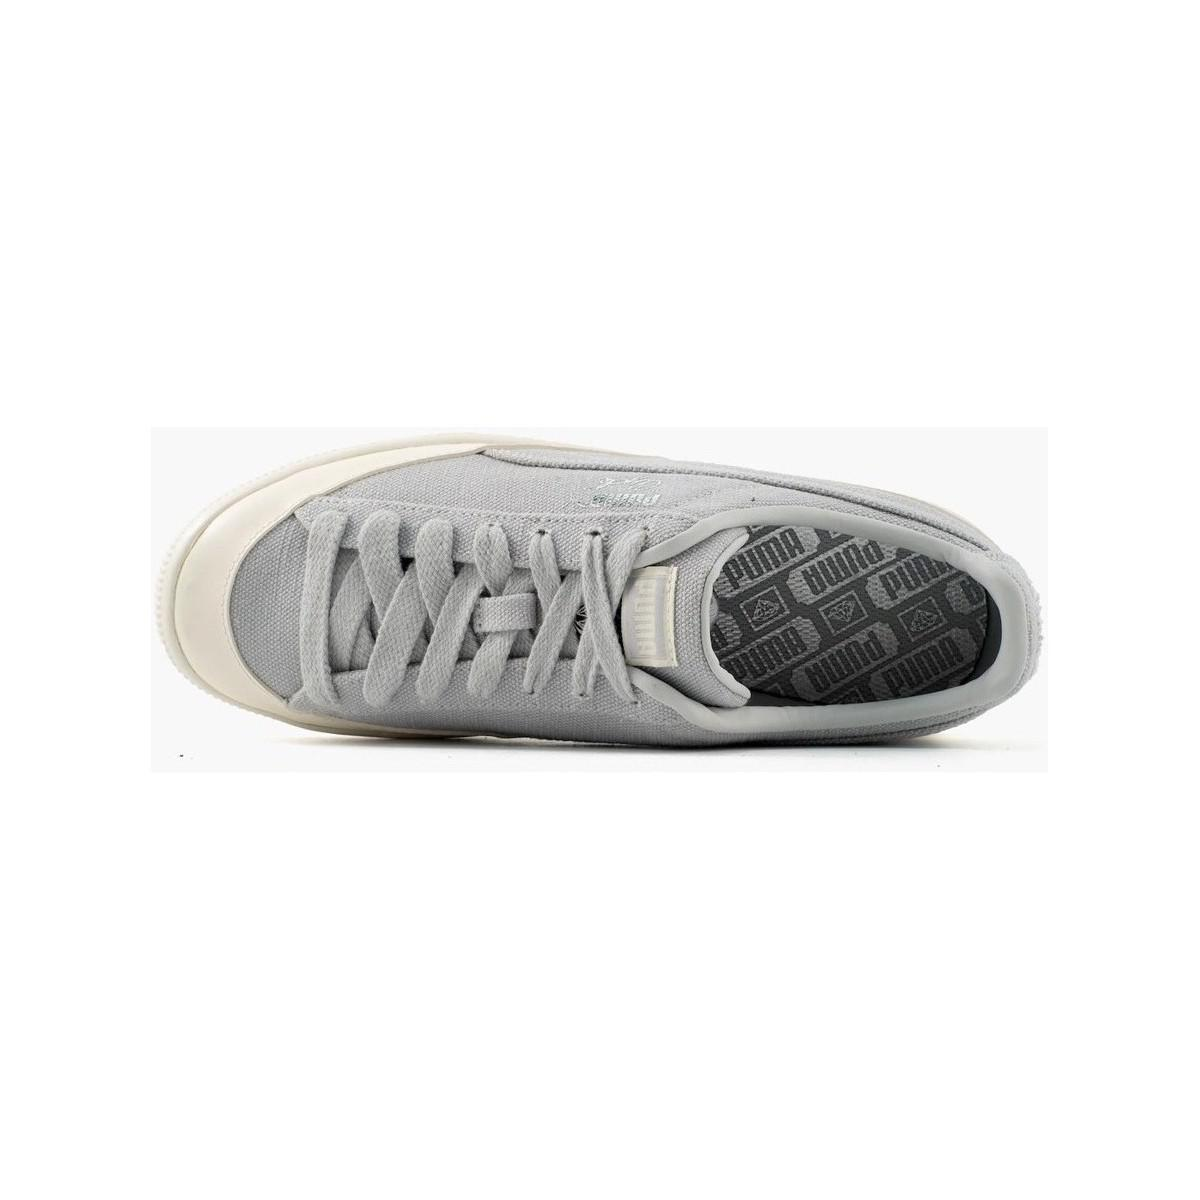 5d530db6b254 Puma Clyde X Diamond Supply Women s Shoes (trainers) In Multicolour ...